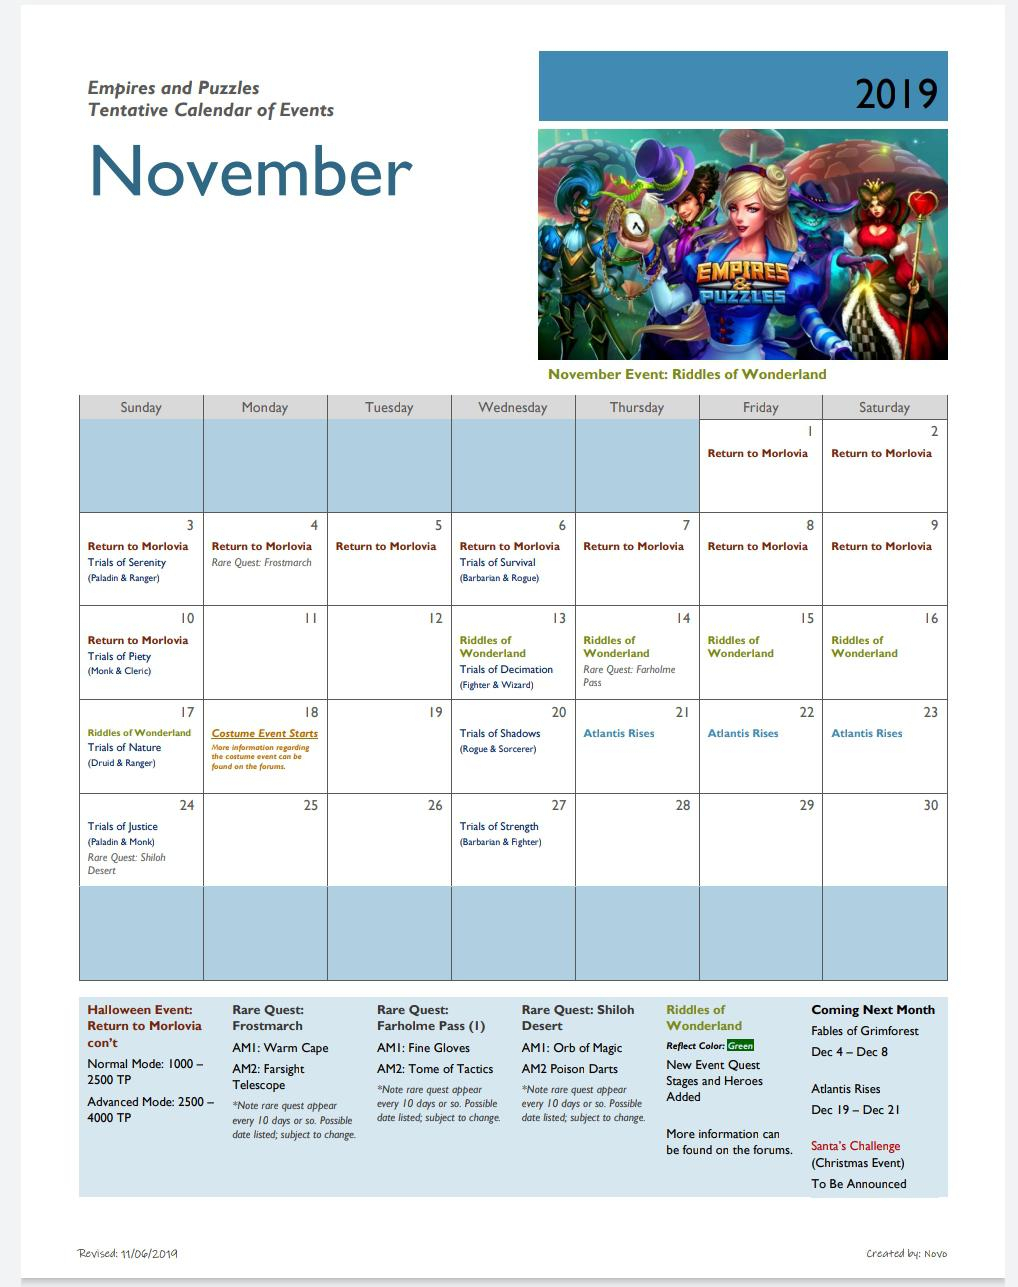 Upated November Calendar : Empiresandpuzzles intended for Empire And Puzzles Calendar